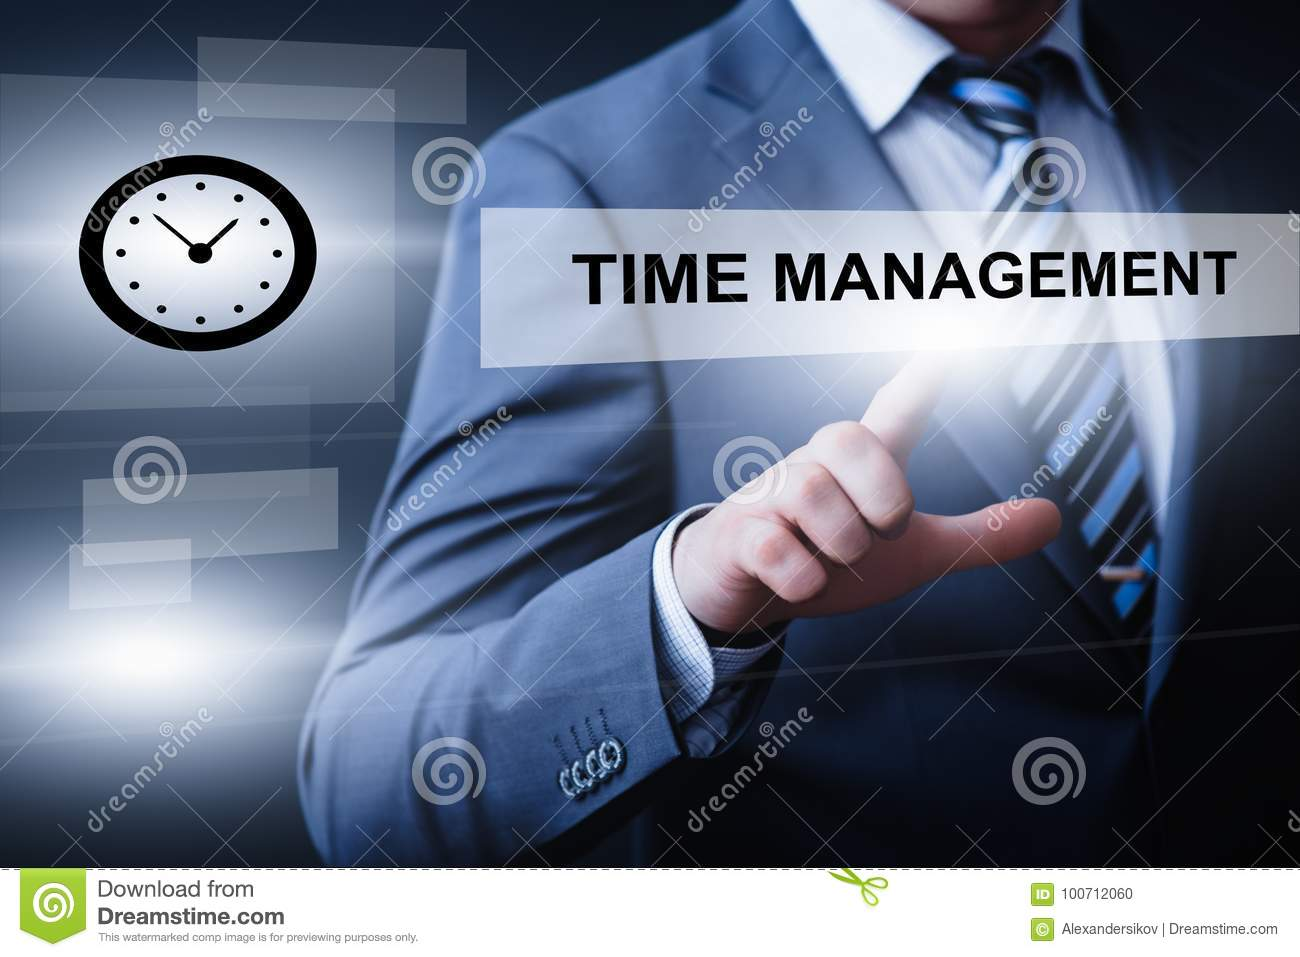 Time Management And Technology: Time Management Project Efficiency Strategy Goals Business